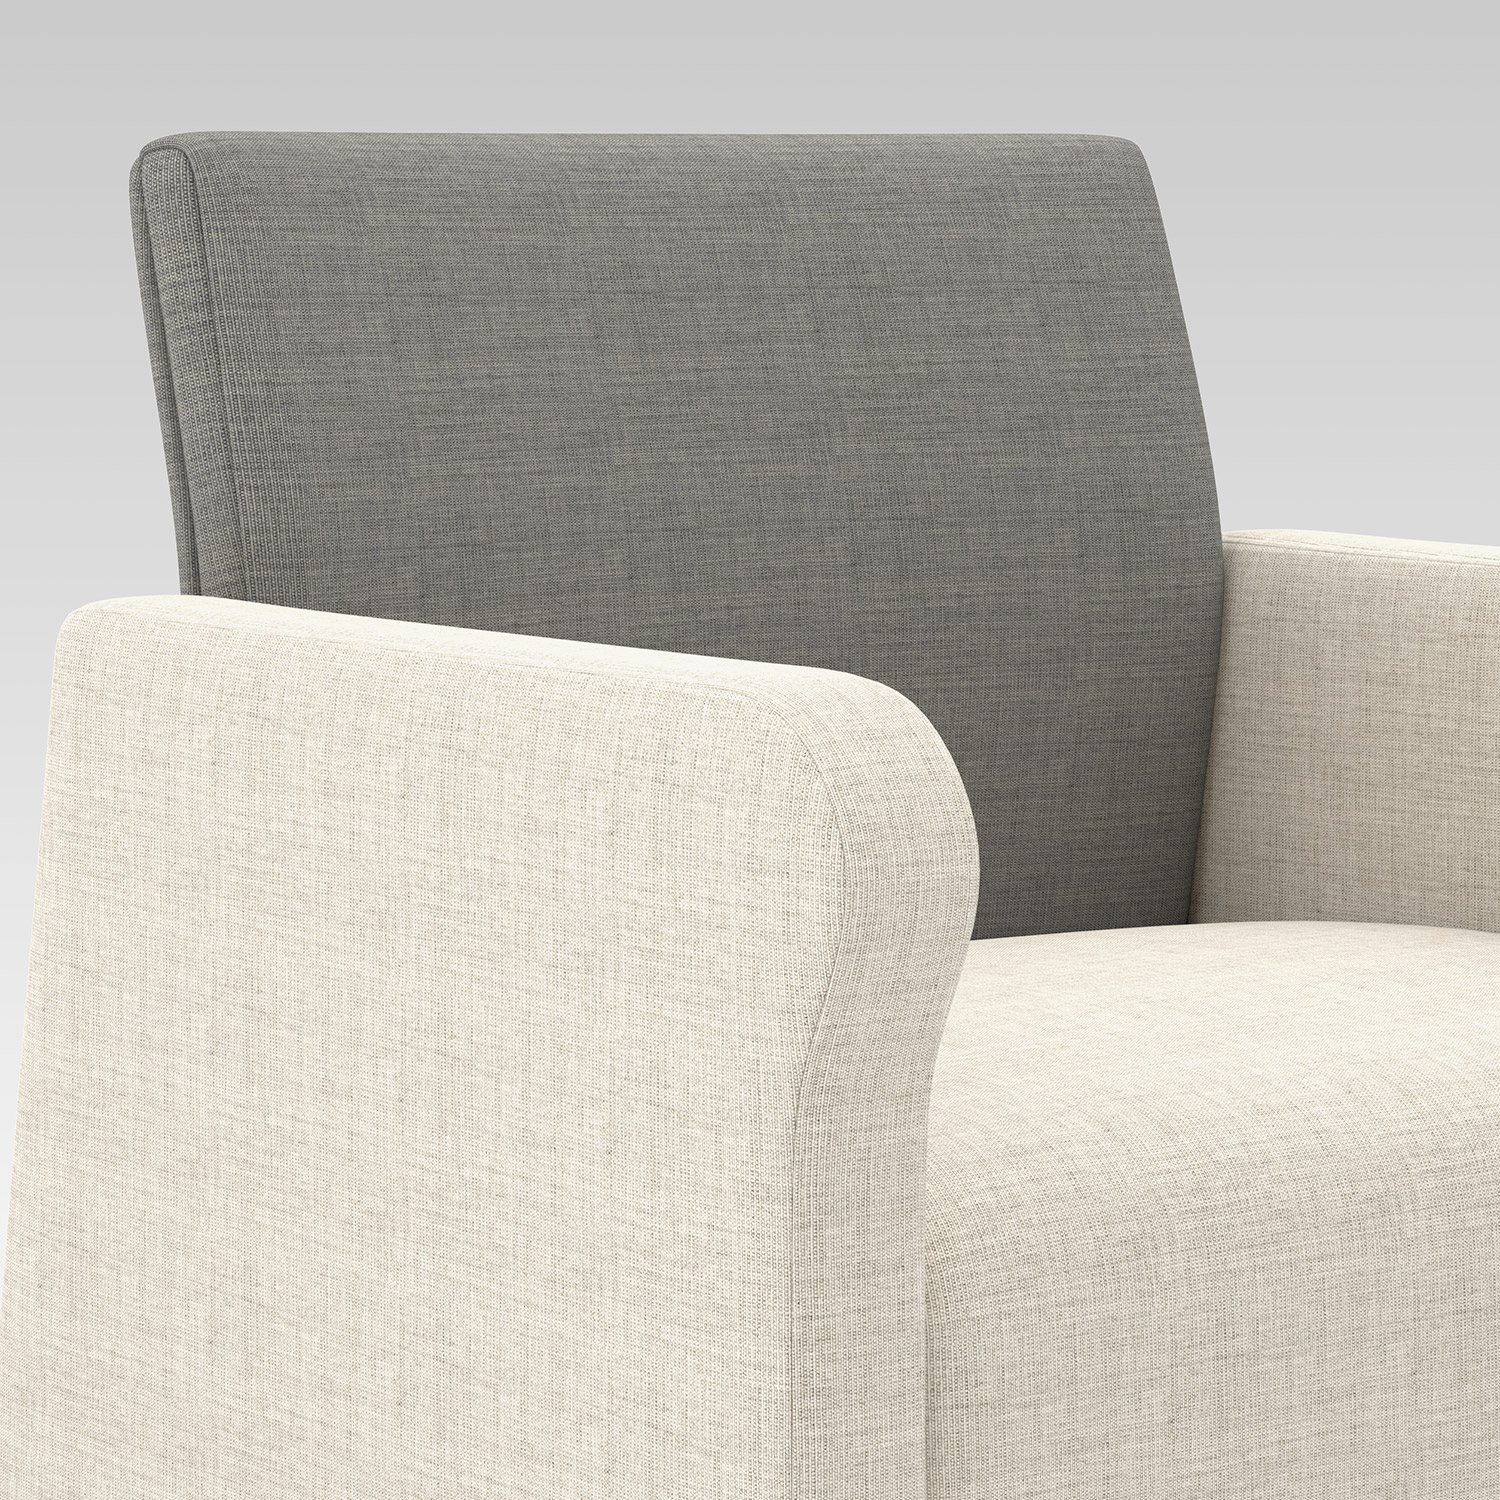 Confide Seating National Office Furniture National